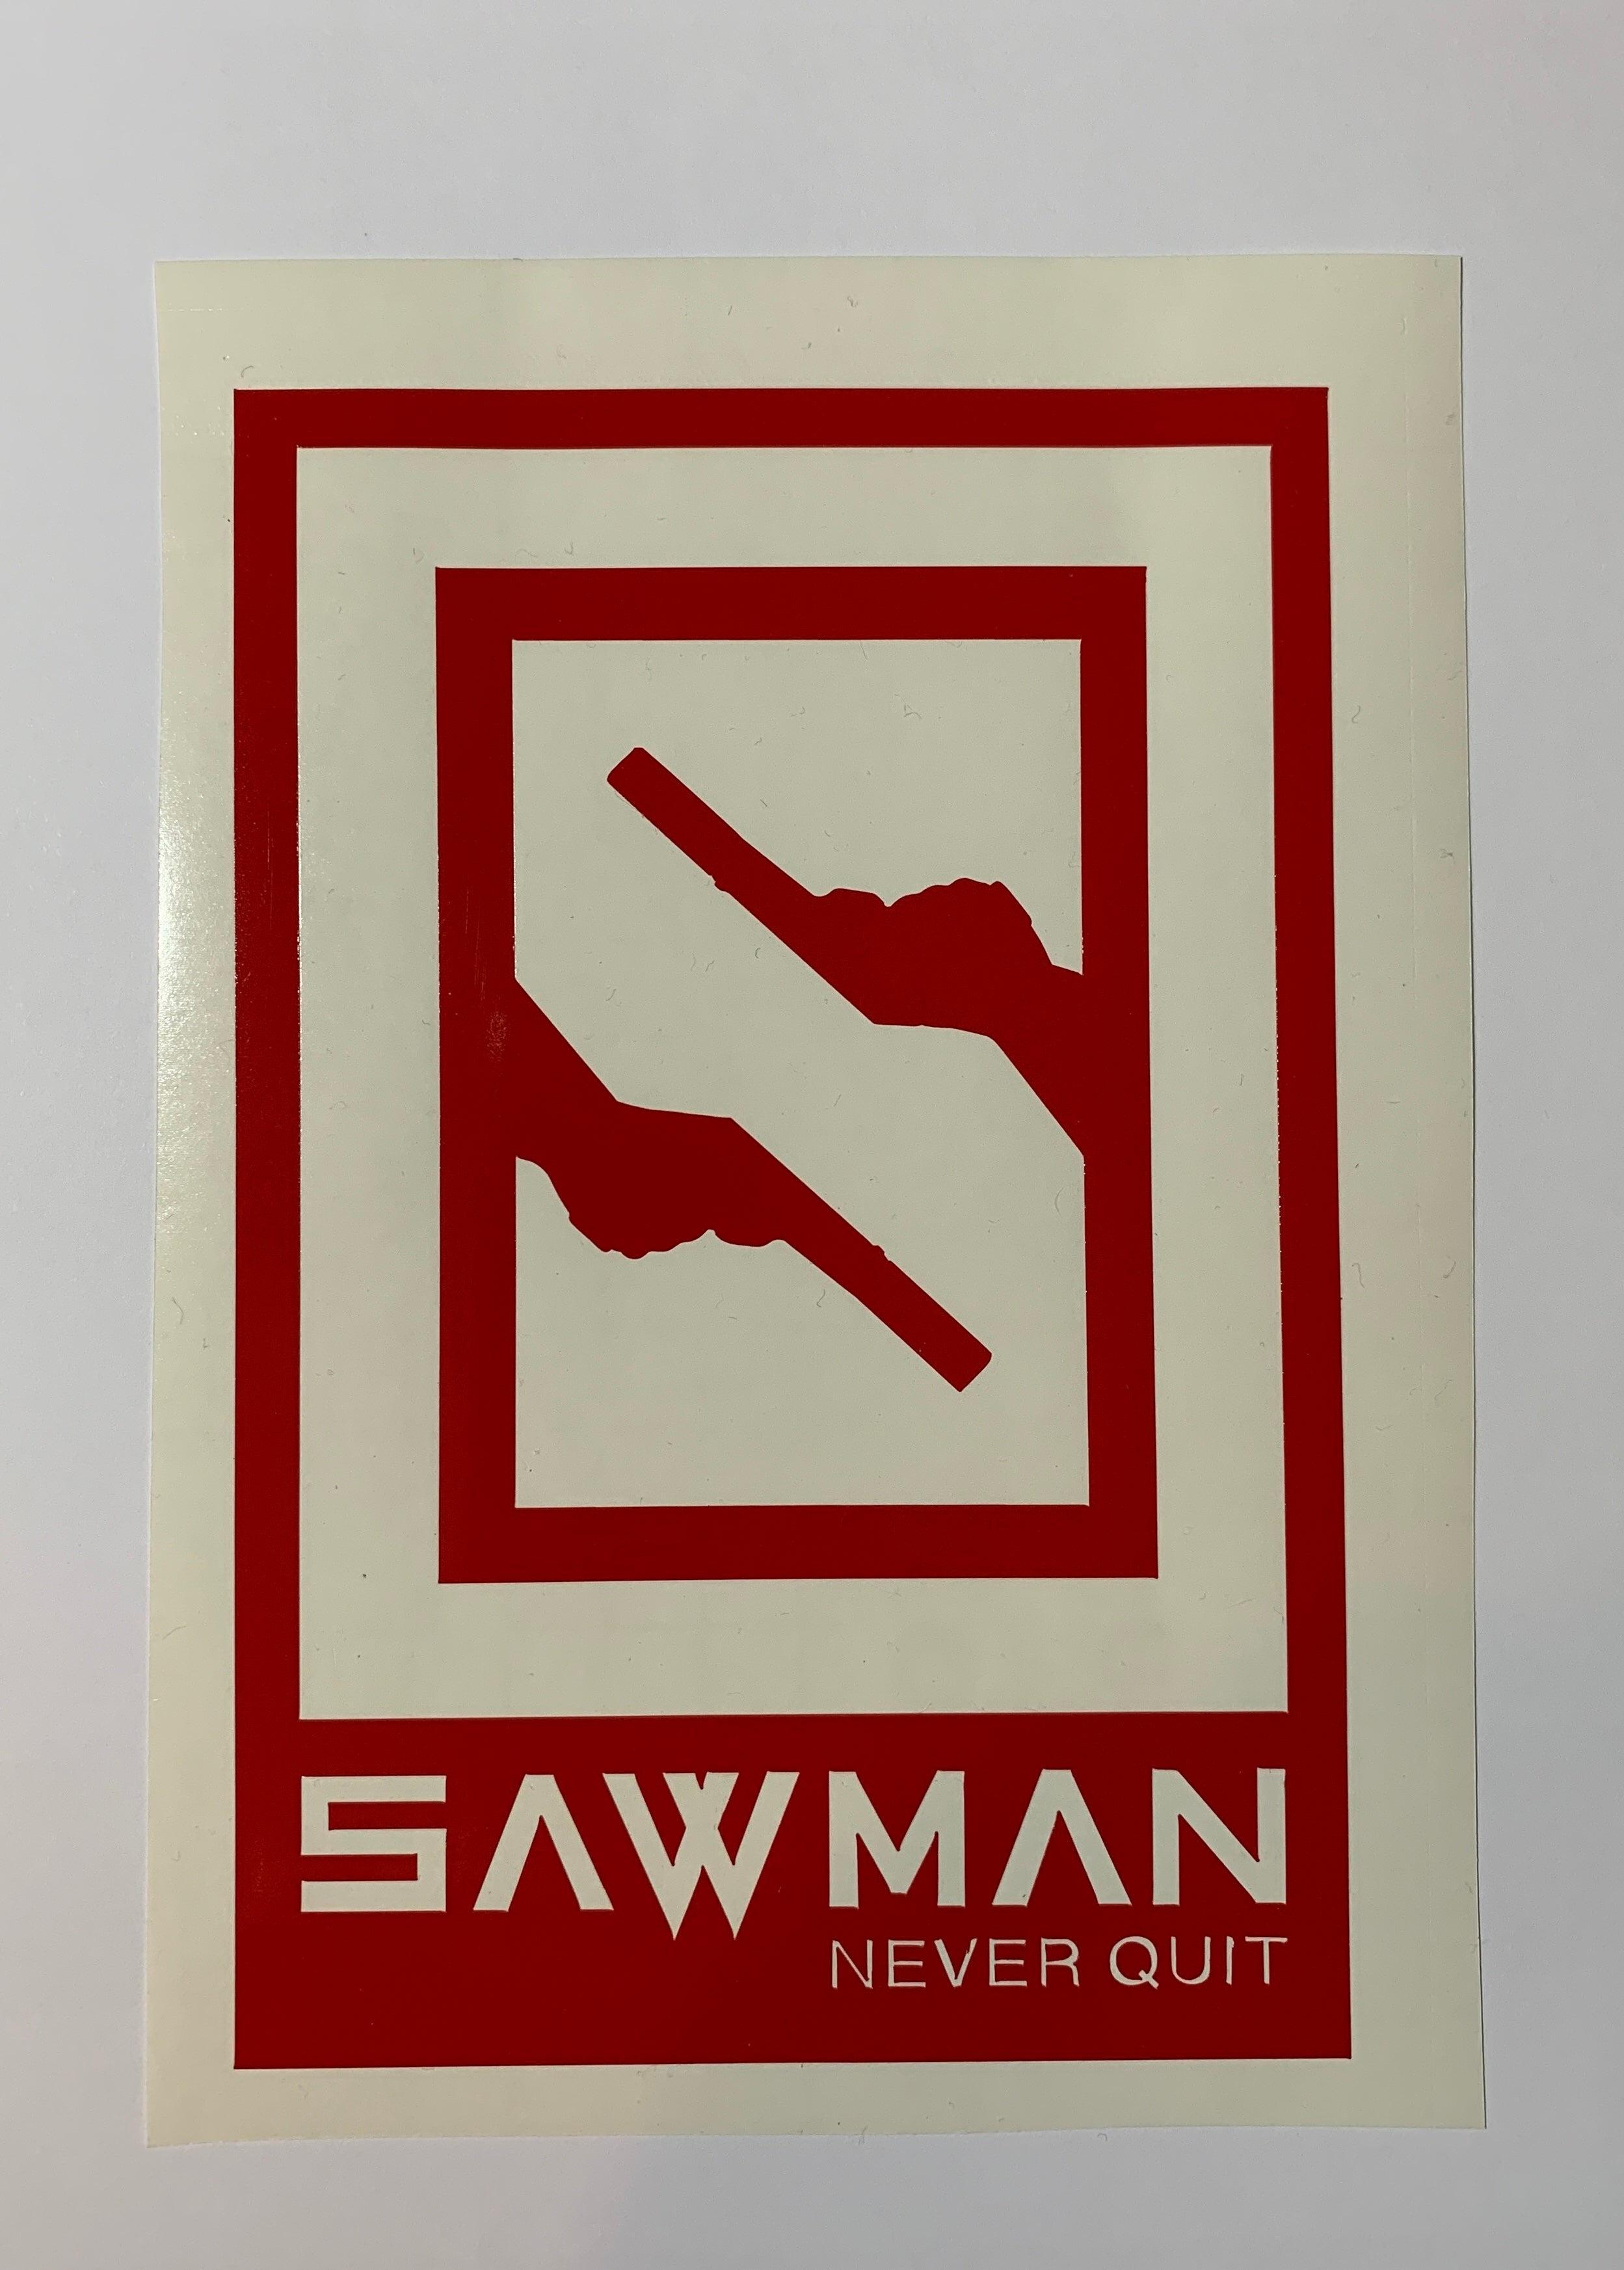 "SAWMAN Never Quit 5.5"" x 8"" Decal"